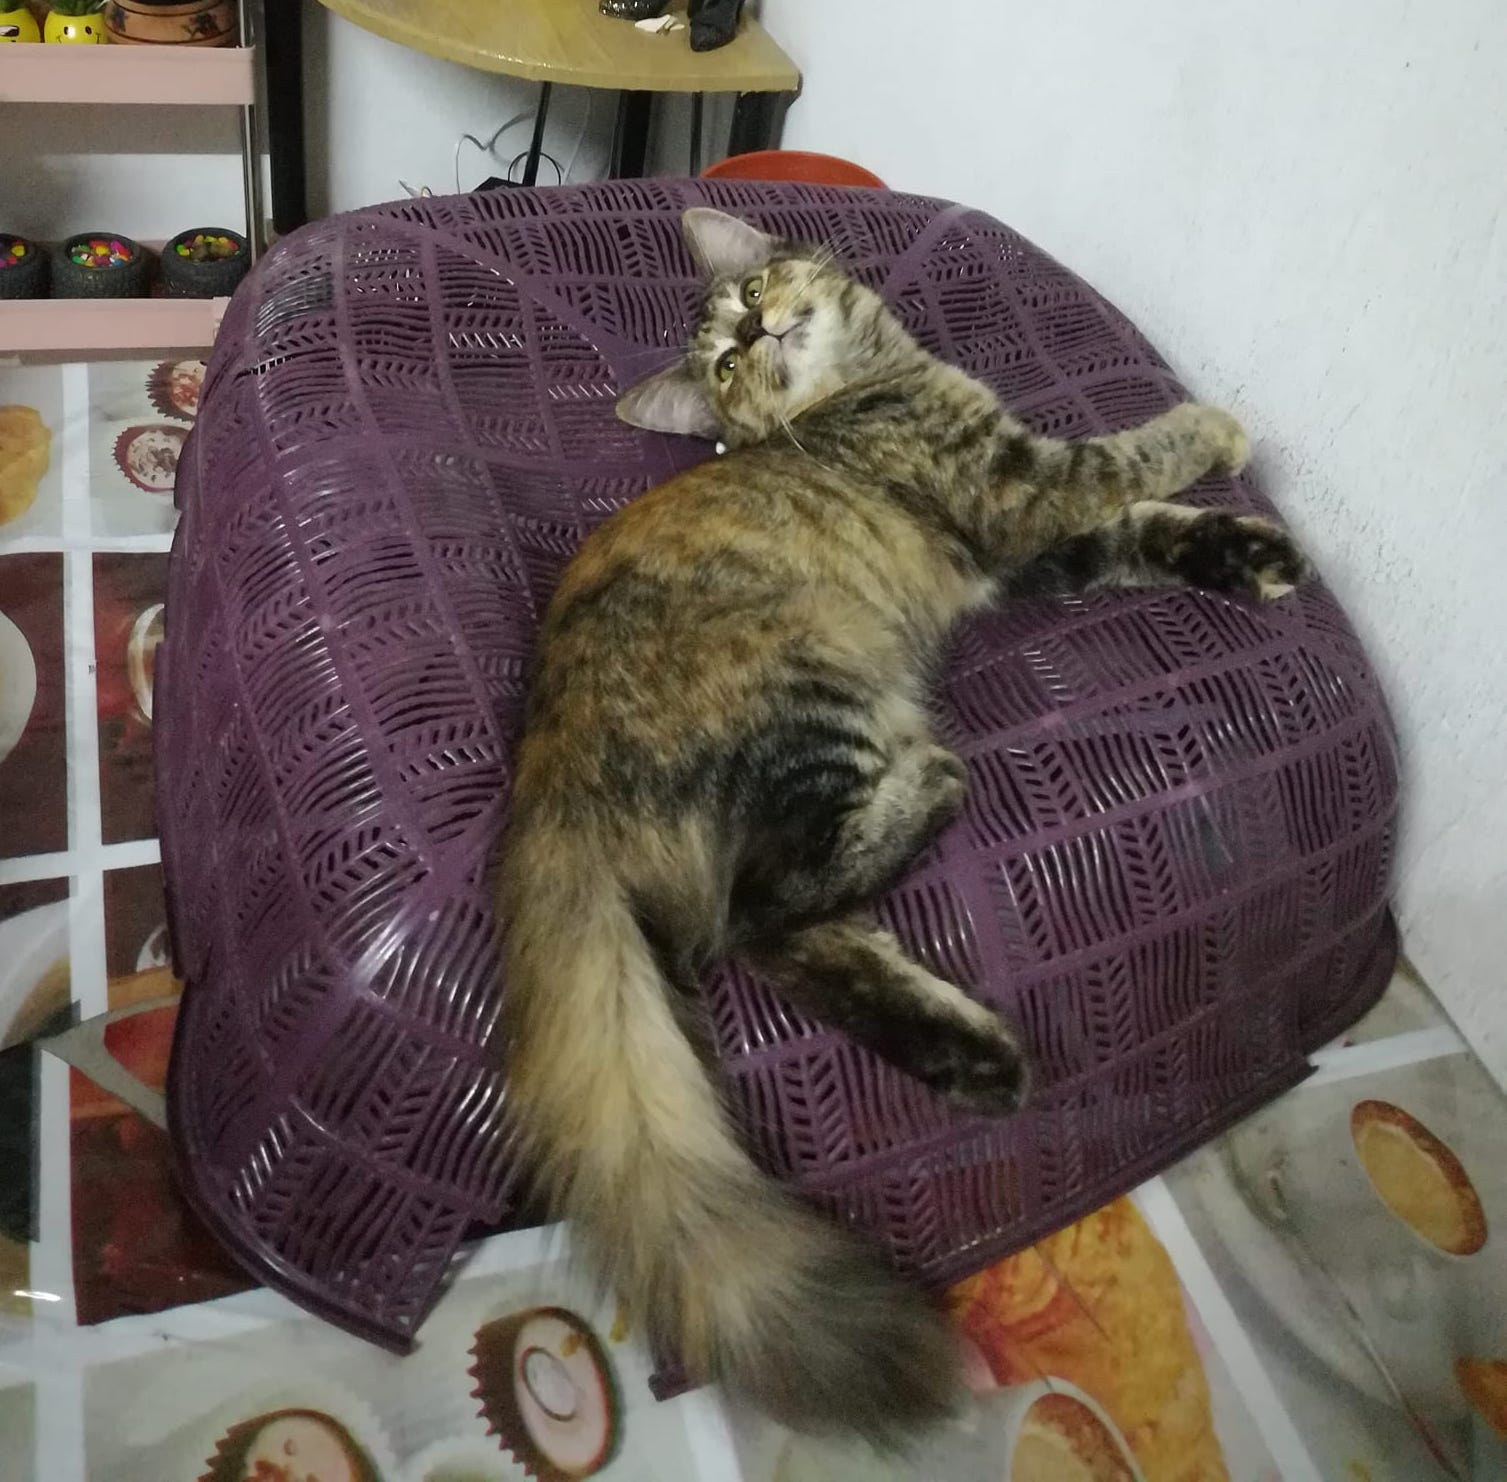 Unusual tip for nappy cats on food covers - problem